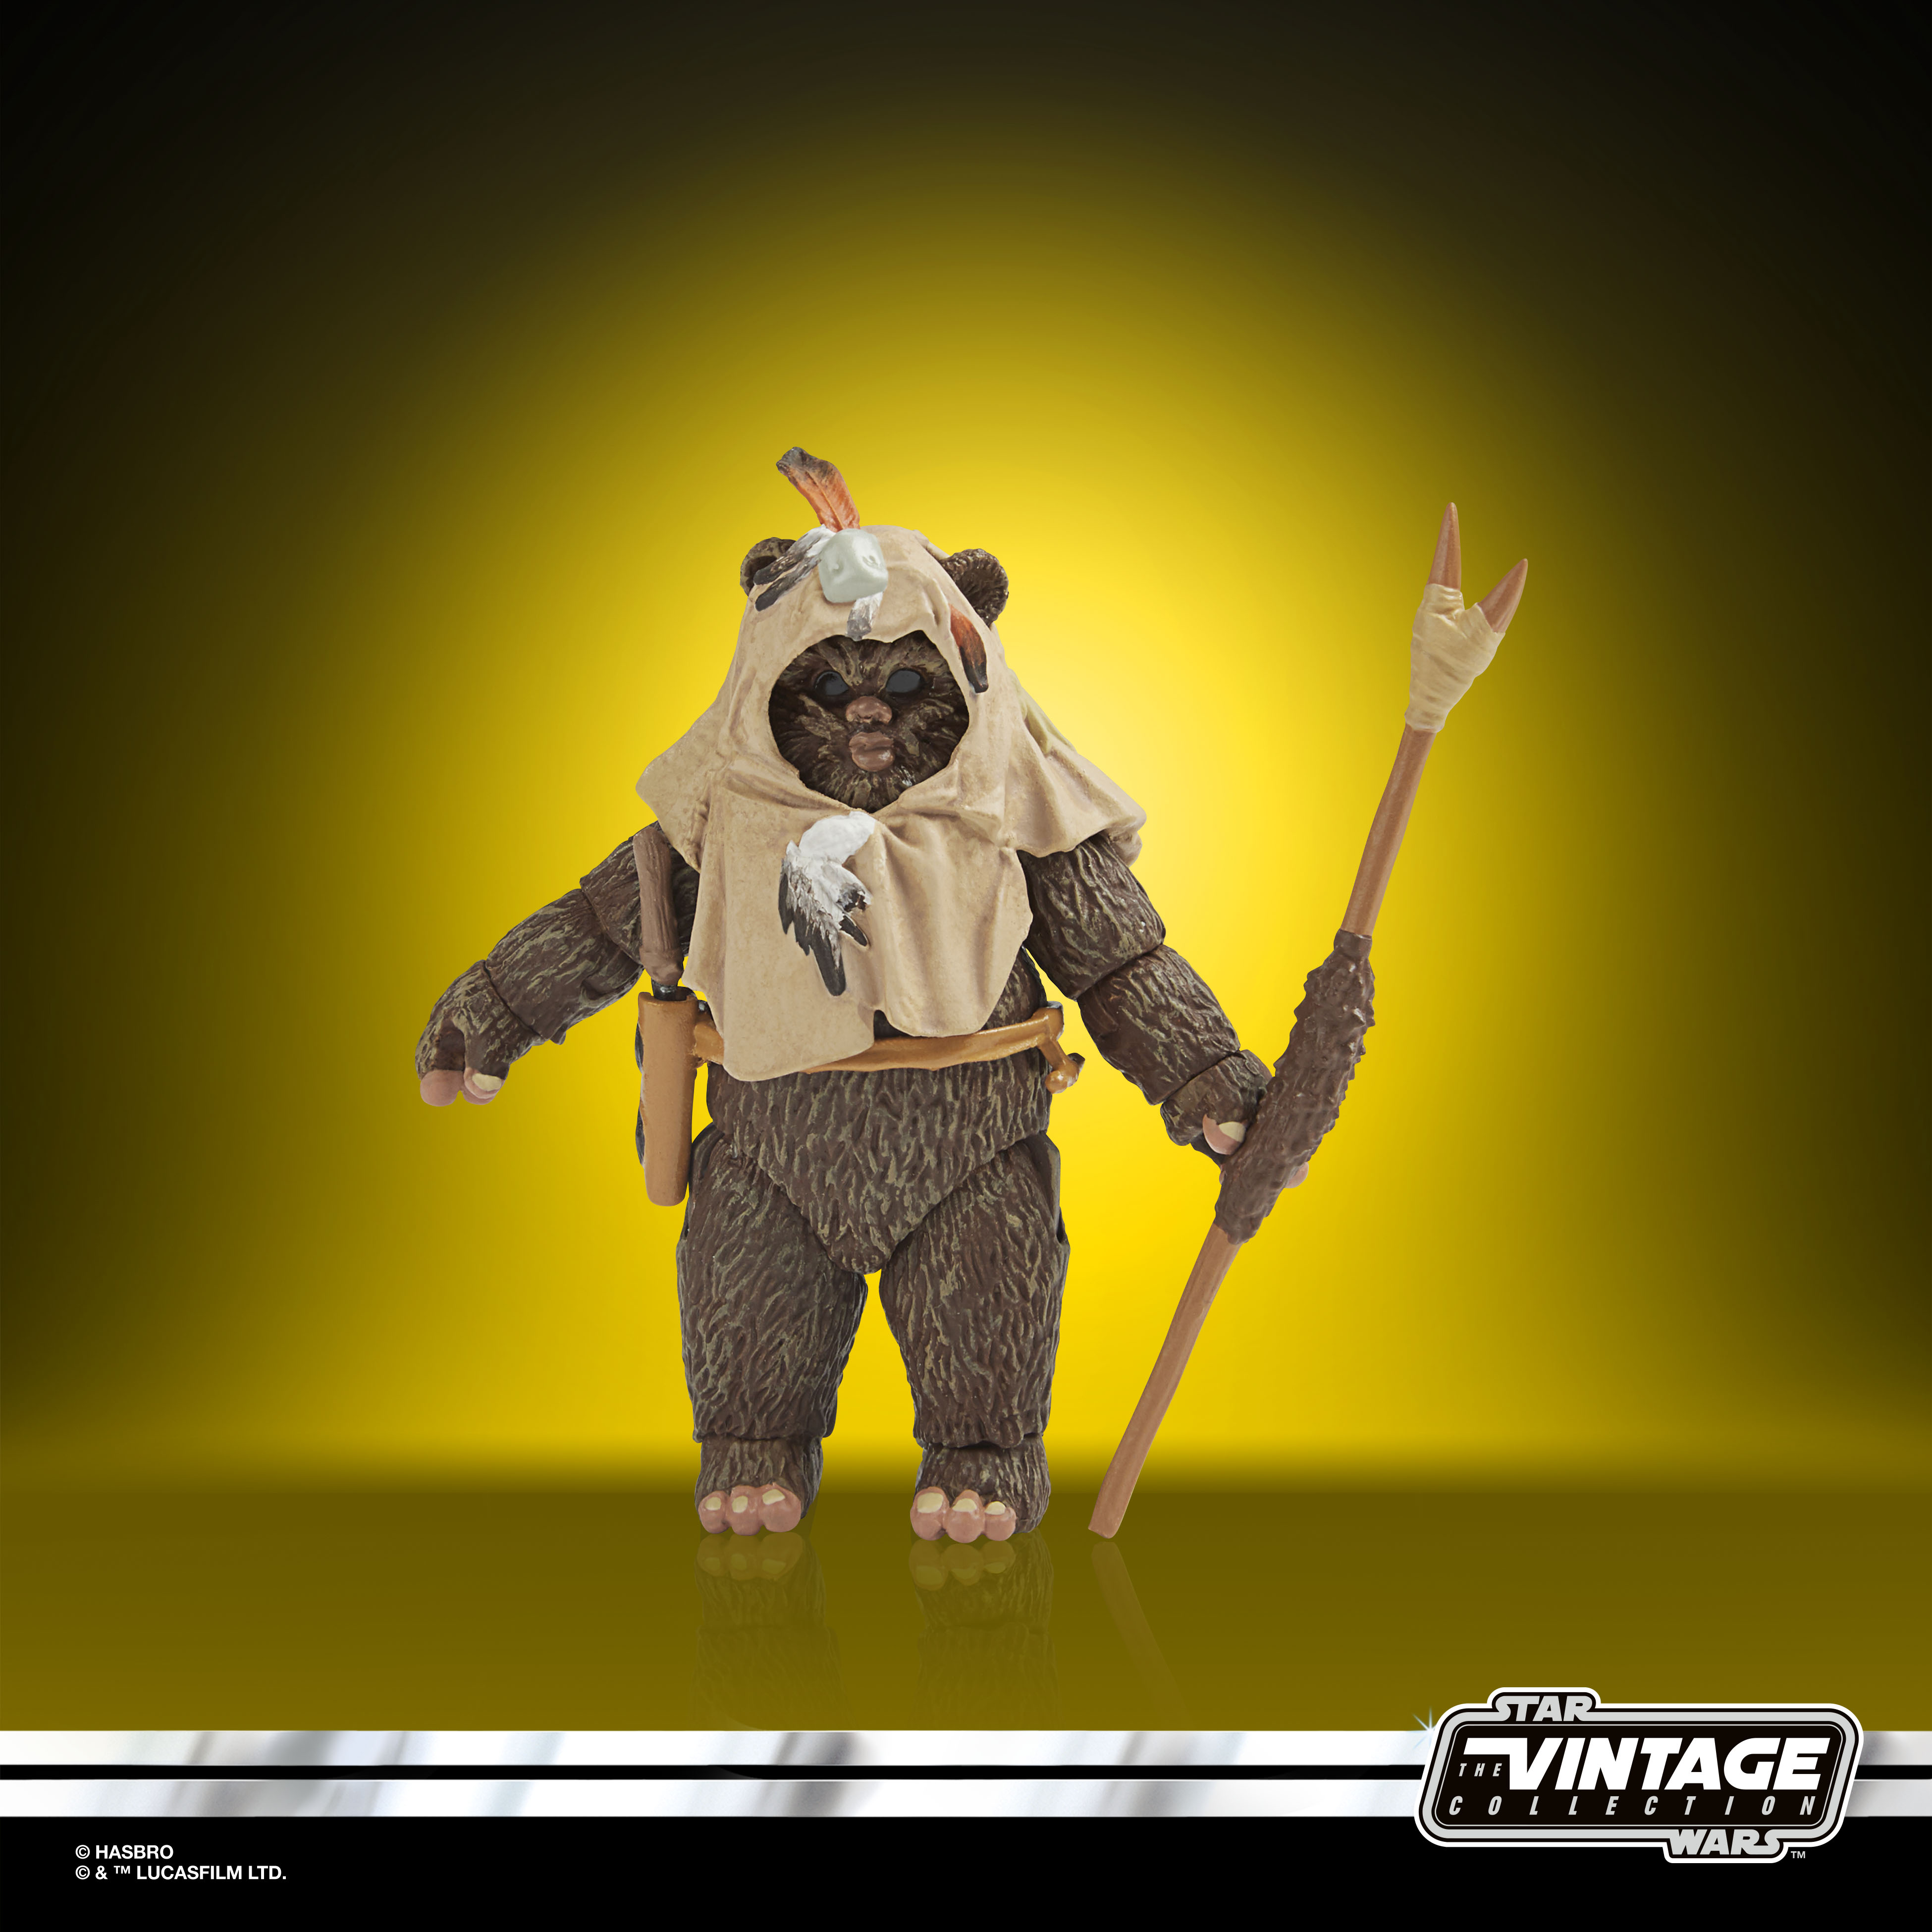 STAR WARS THE VINTAGE COLLECTION LUCASFILM FIRST 50 YEARS 3.75-INCH PAPLOO Figure – oop(1)